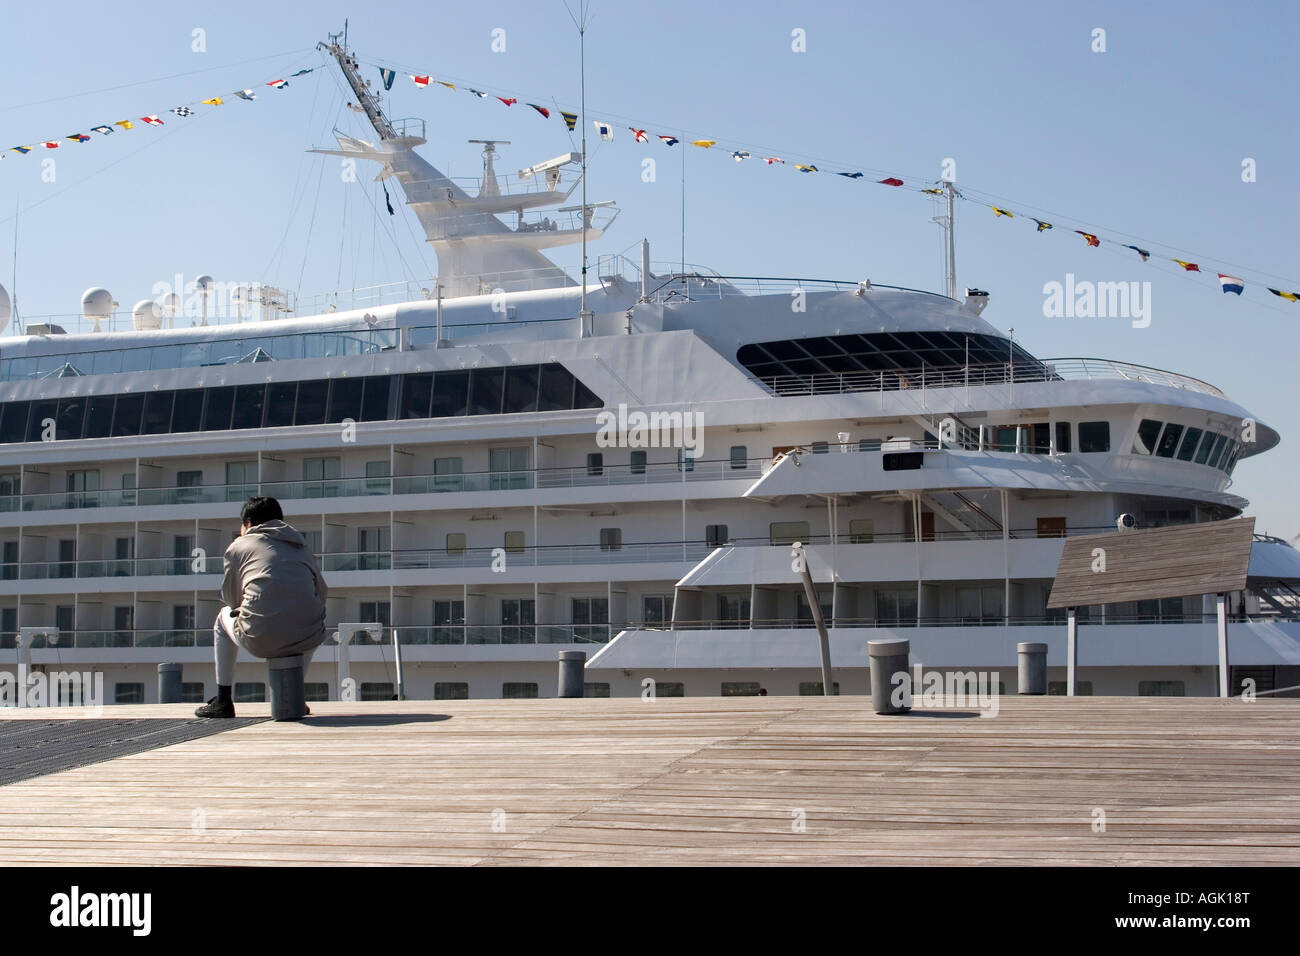 A man watches a cruise ship tied up to the dock in Yokohama, Japan - Stock Image